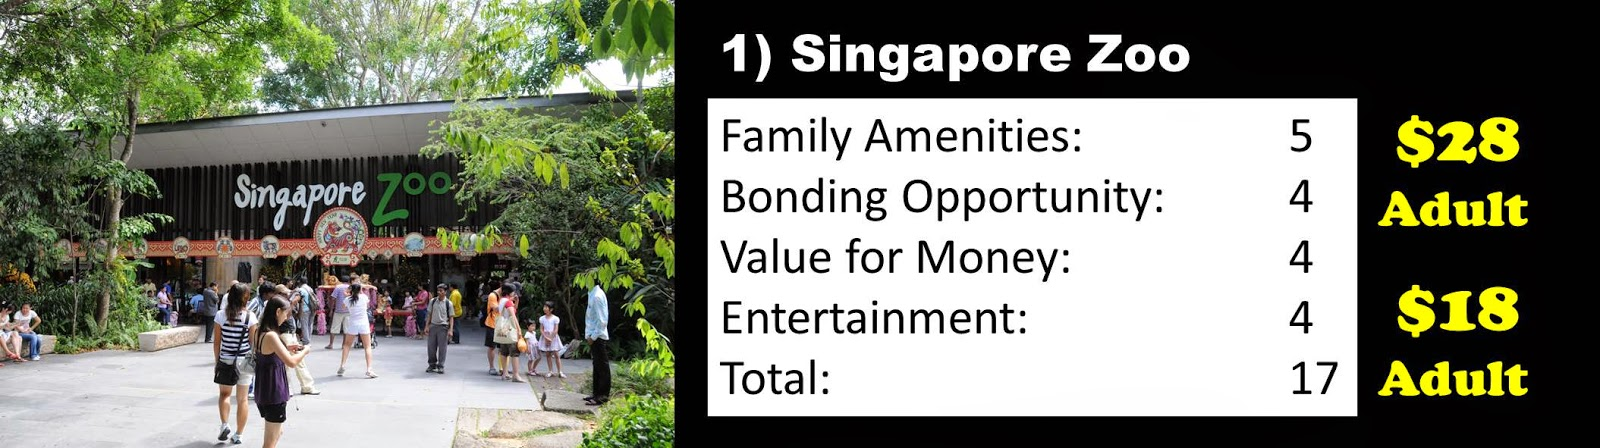 Best Family Attraction Singapore